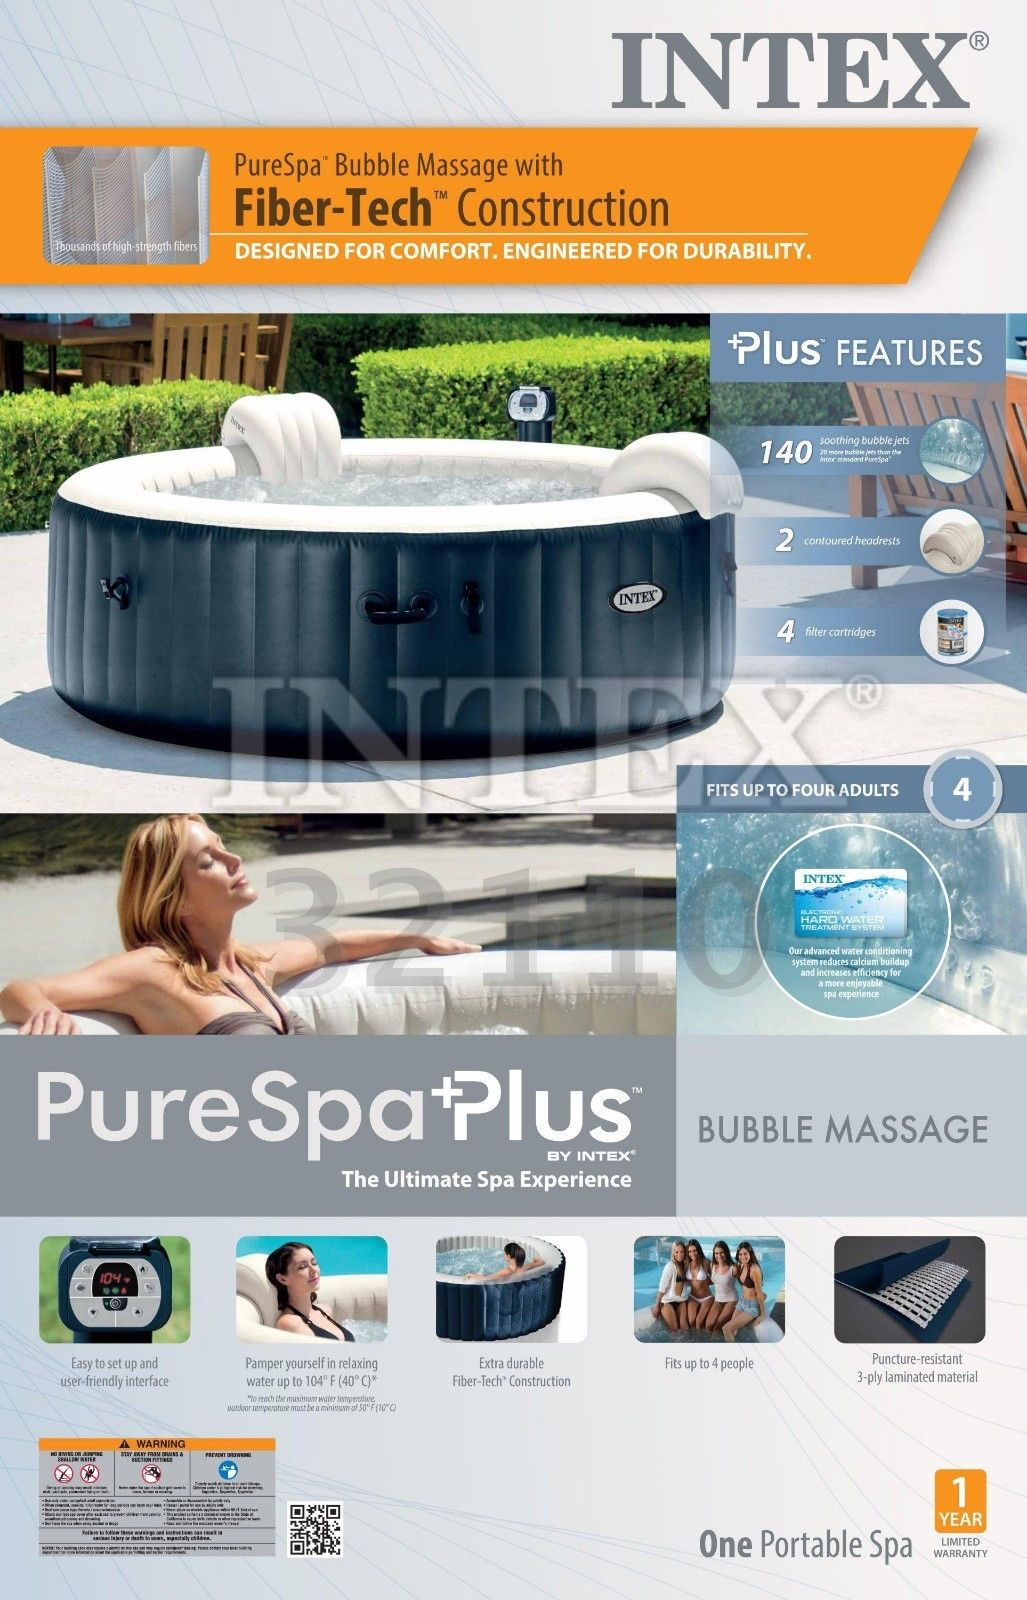 Intex Pure Spa 4 Person Inflatable Portable Heated Bubble